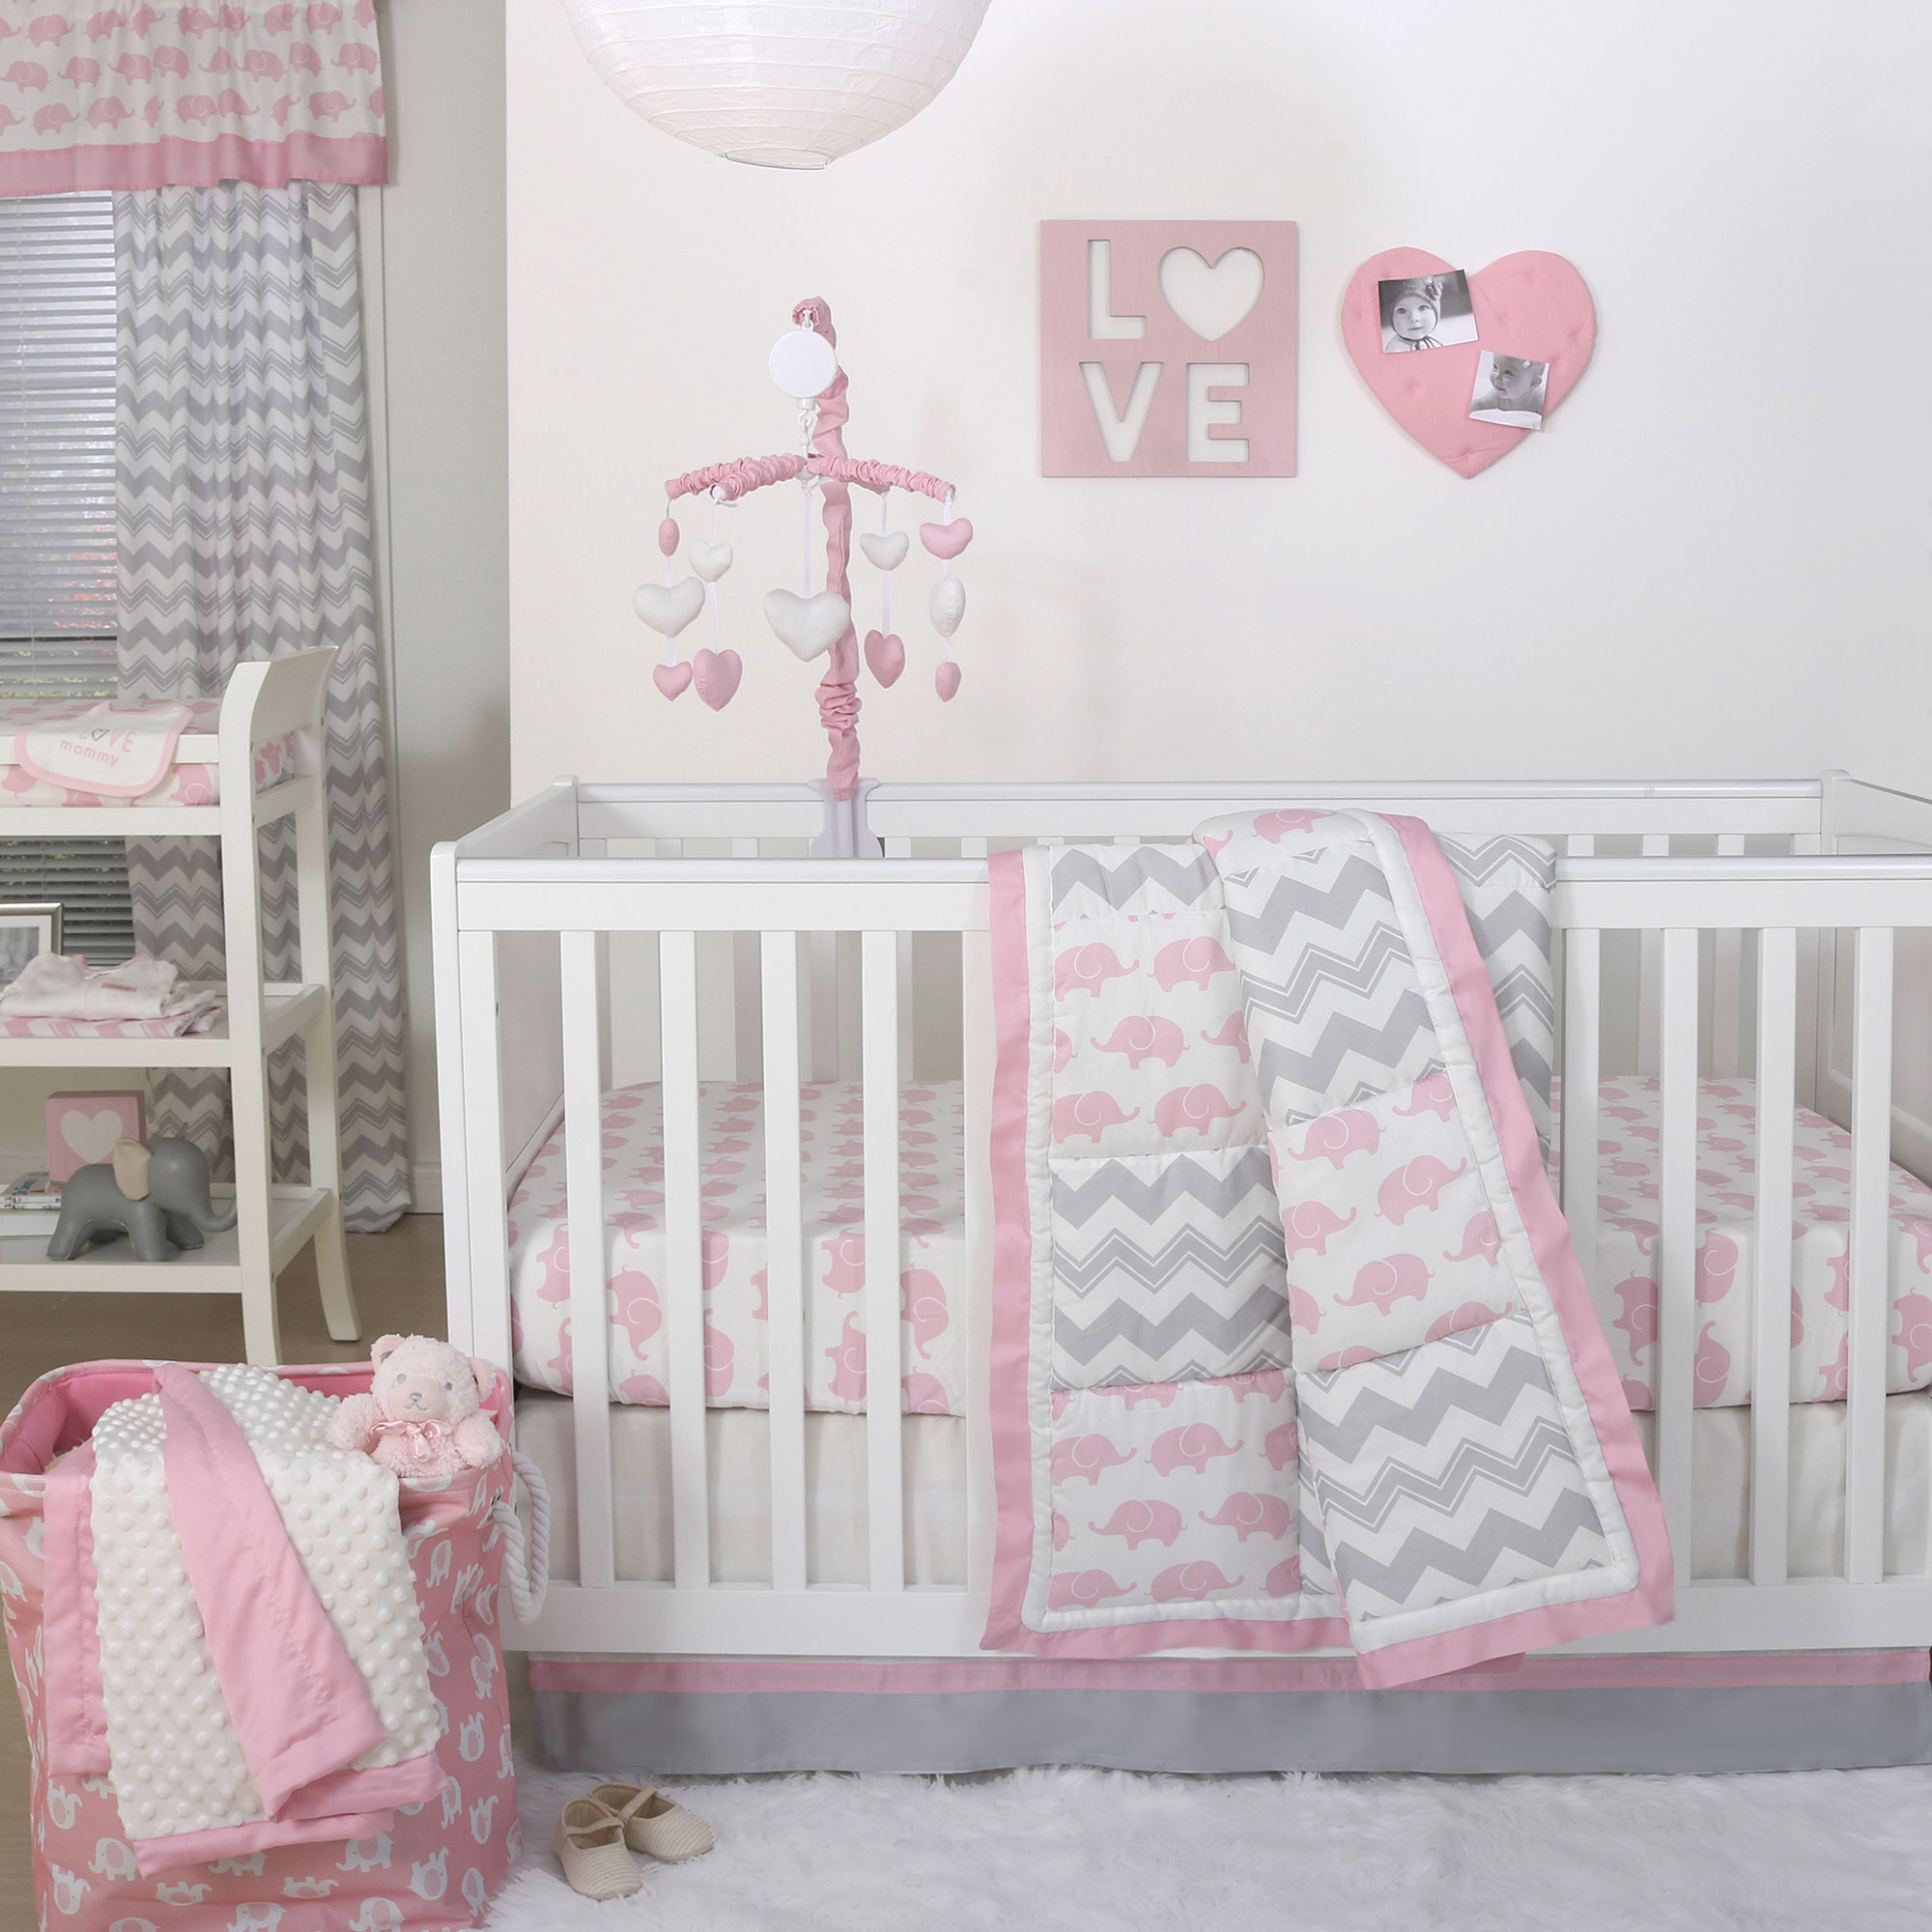 The Peanut Shell 4 Piece Baby Crib Bedding Set Pink Elephants And Grey Zig Zag Patchwork 100 Cotton Quilt Dust Ruffle Ed Sheet